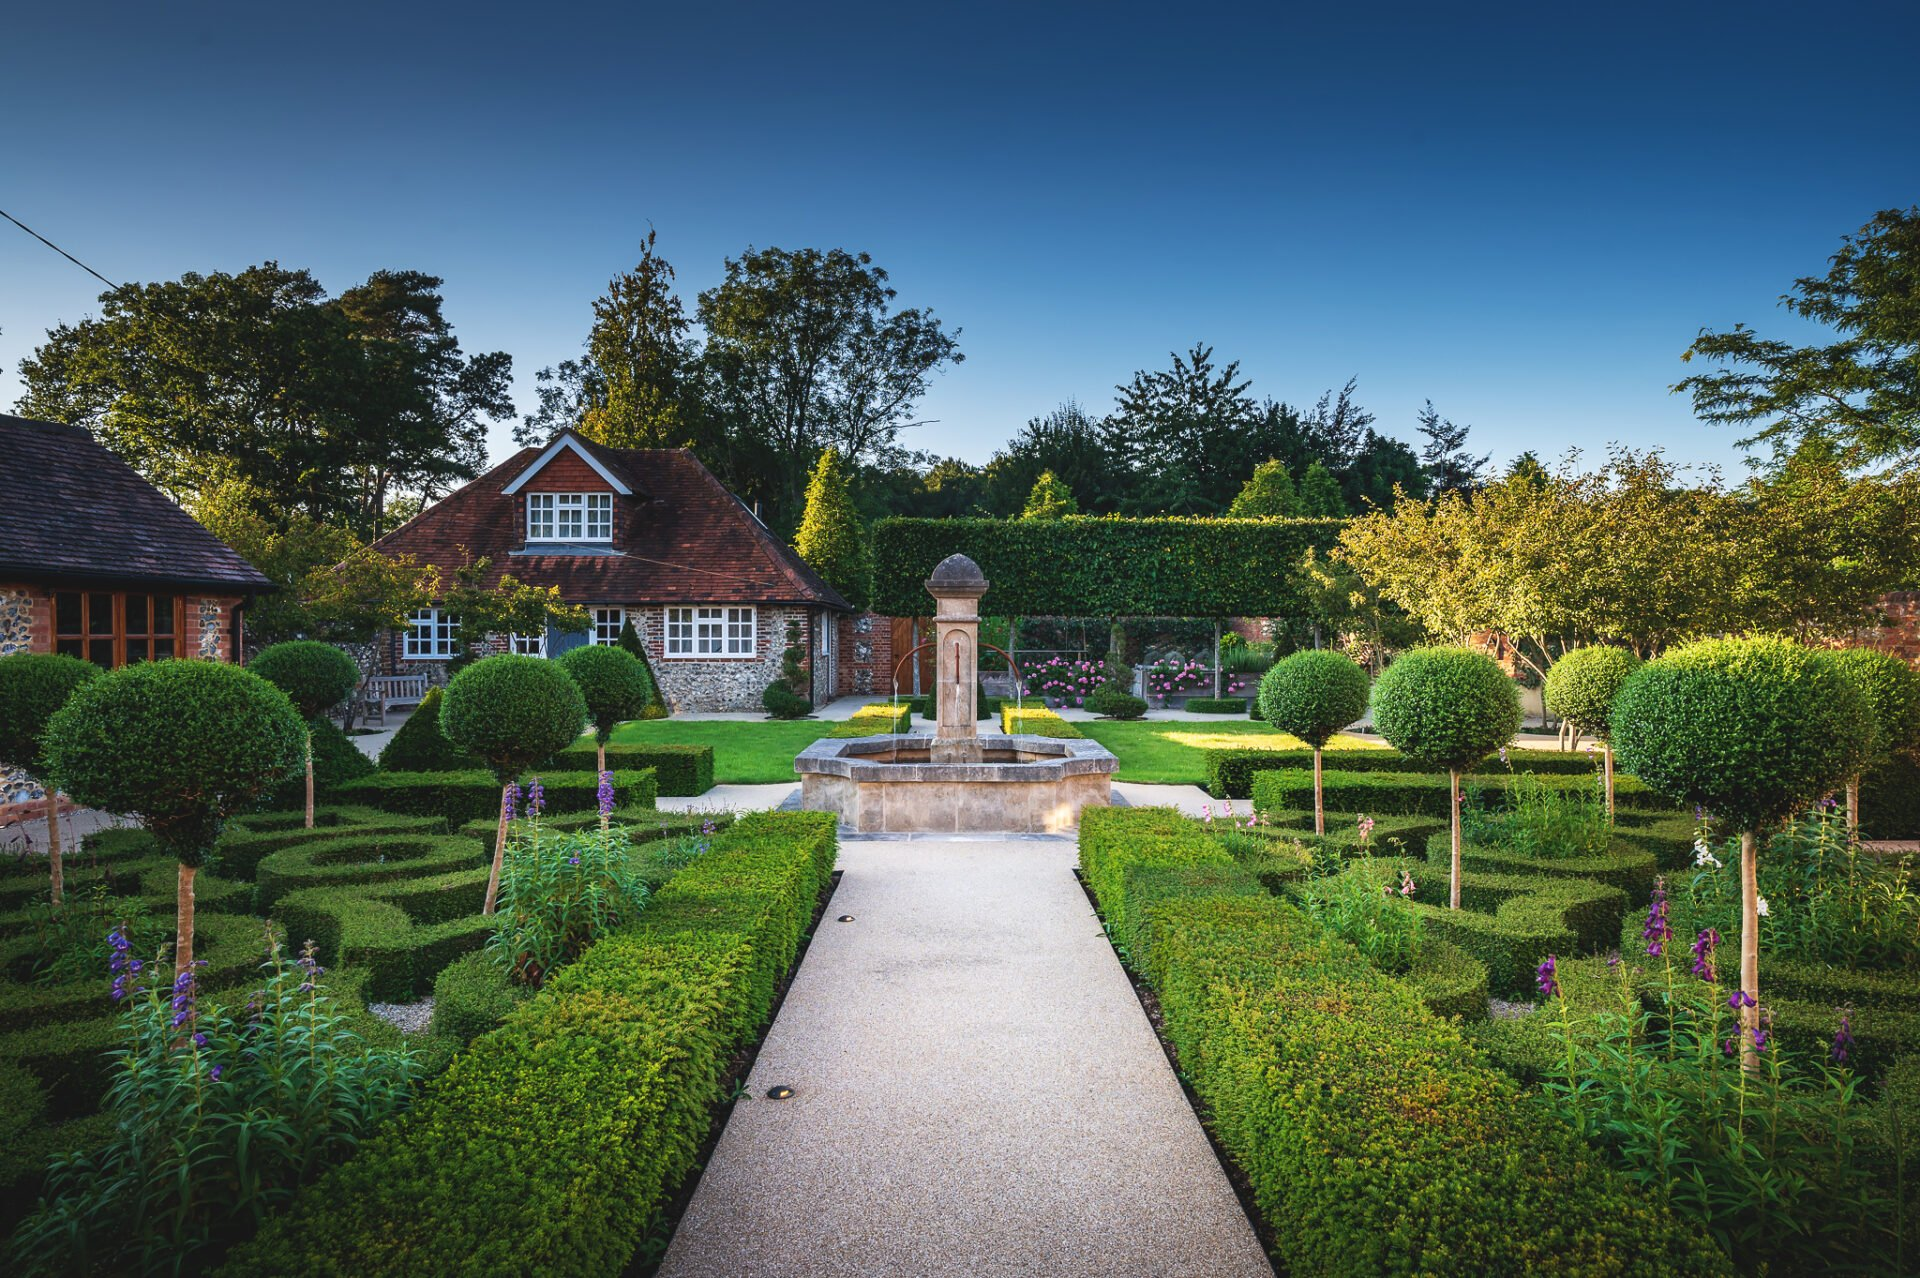 Formal french garden with knot garden by Jo Alderson Phillips